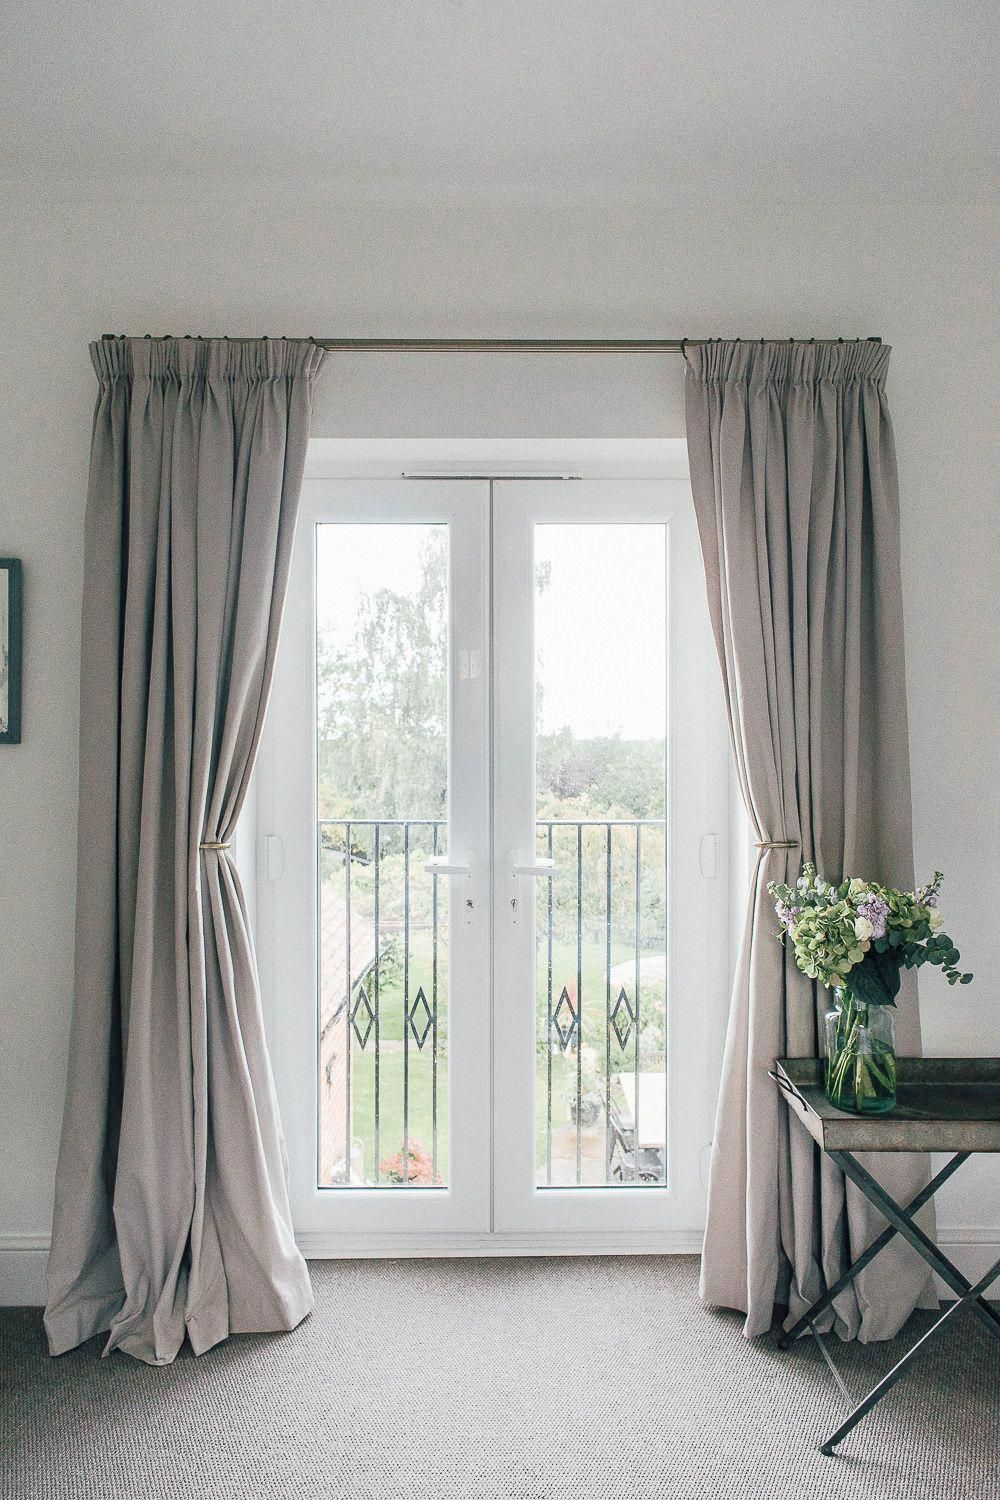 Full Length Grey Curtains On French Doors With Balcony Overlooking